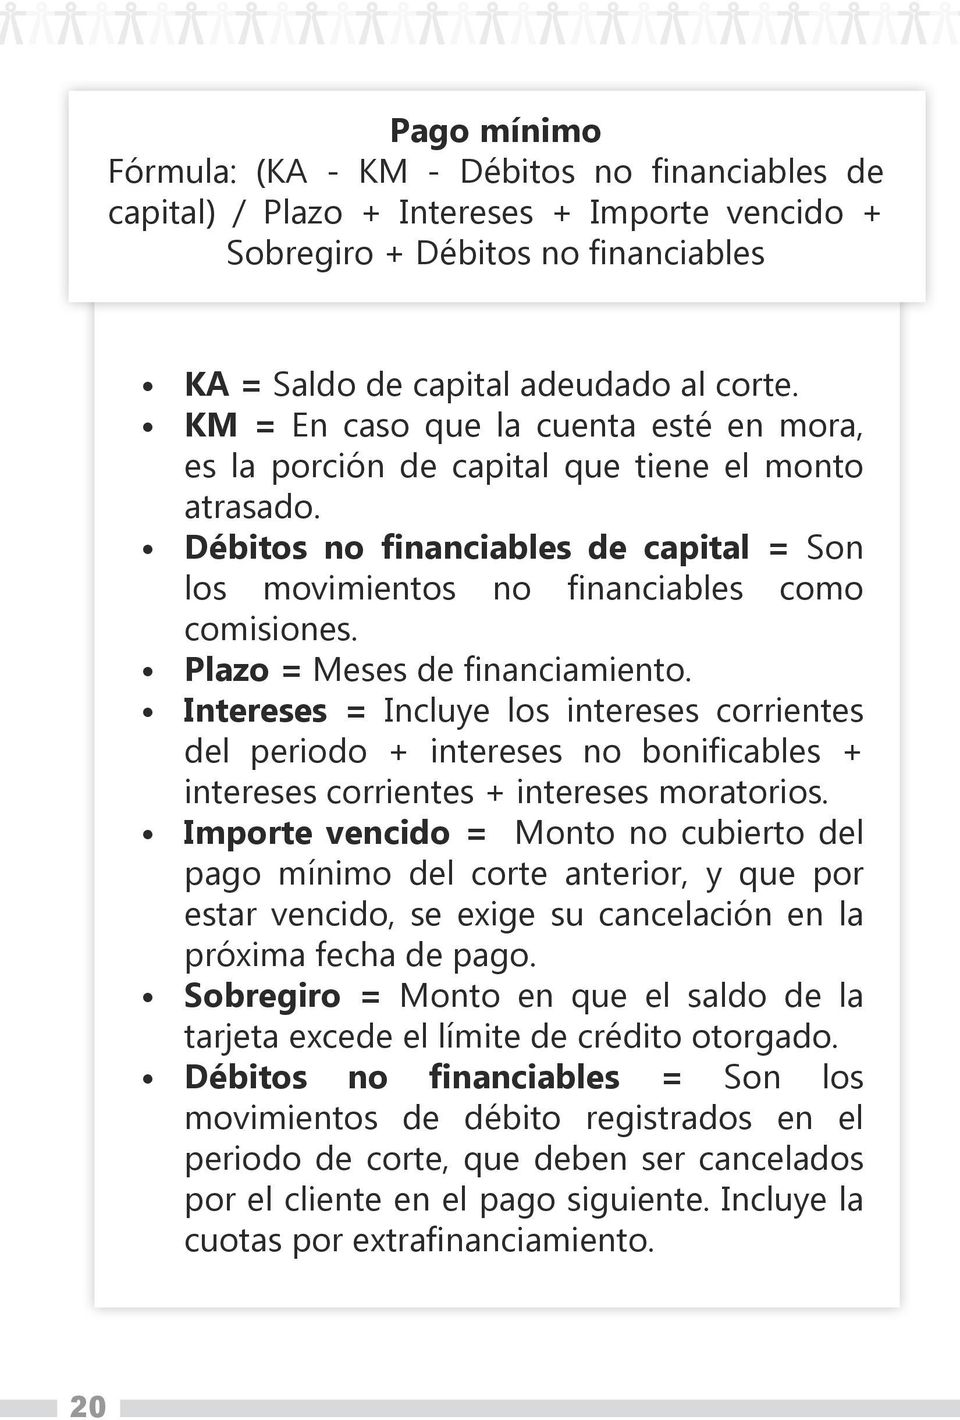 Plazo = Meses de financiamiento. Intereses = Incluye los intereses corrientes del periodo + intereses no bonificables + intereses corrientes + intereses moratorios.